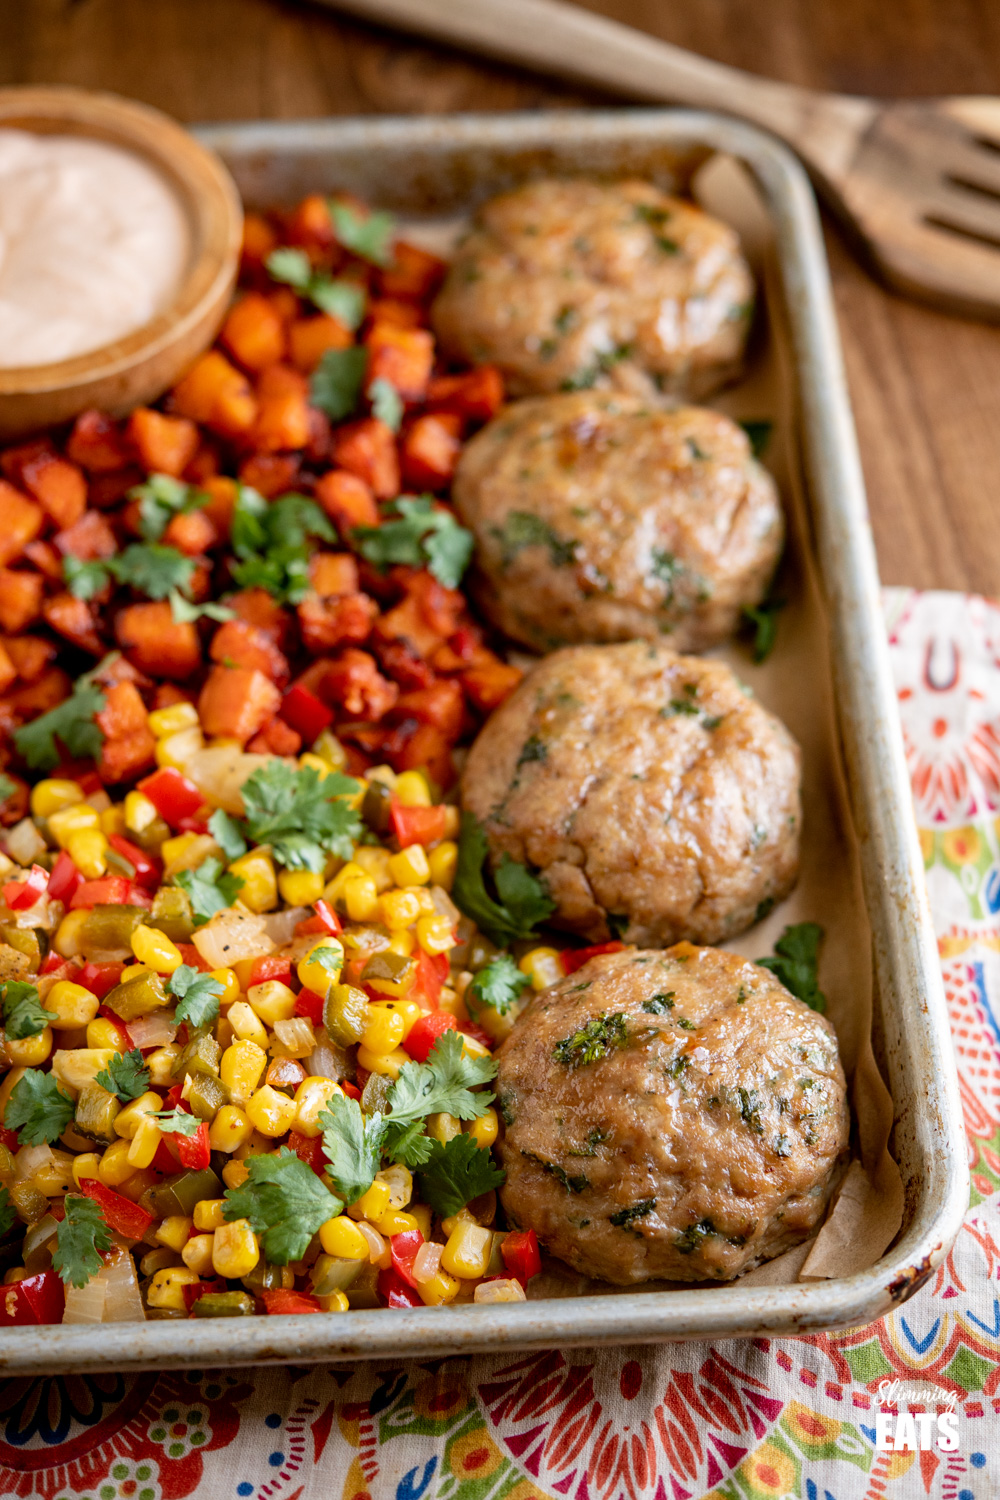 honey garlic chicken burgers on baking tray with roasted butternut squash, peppers and corn on wooden board.